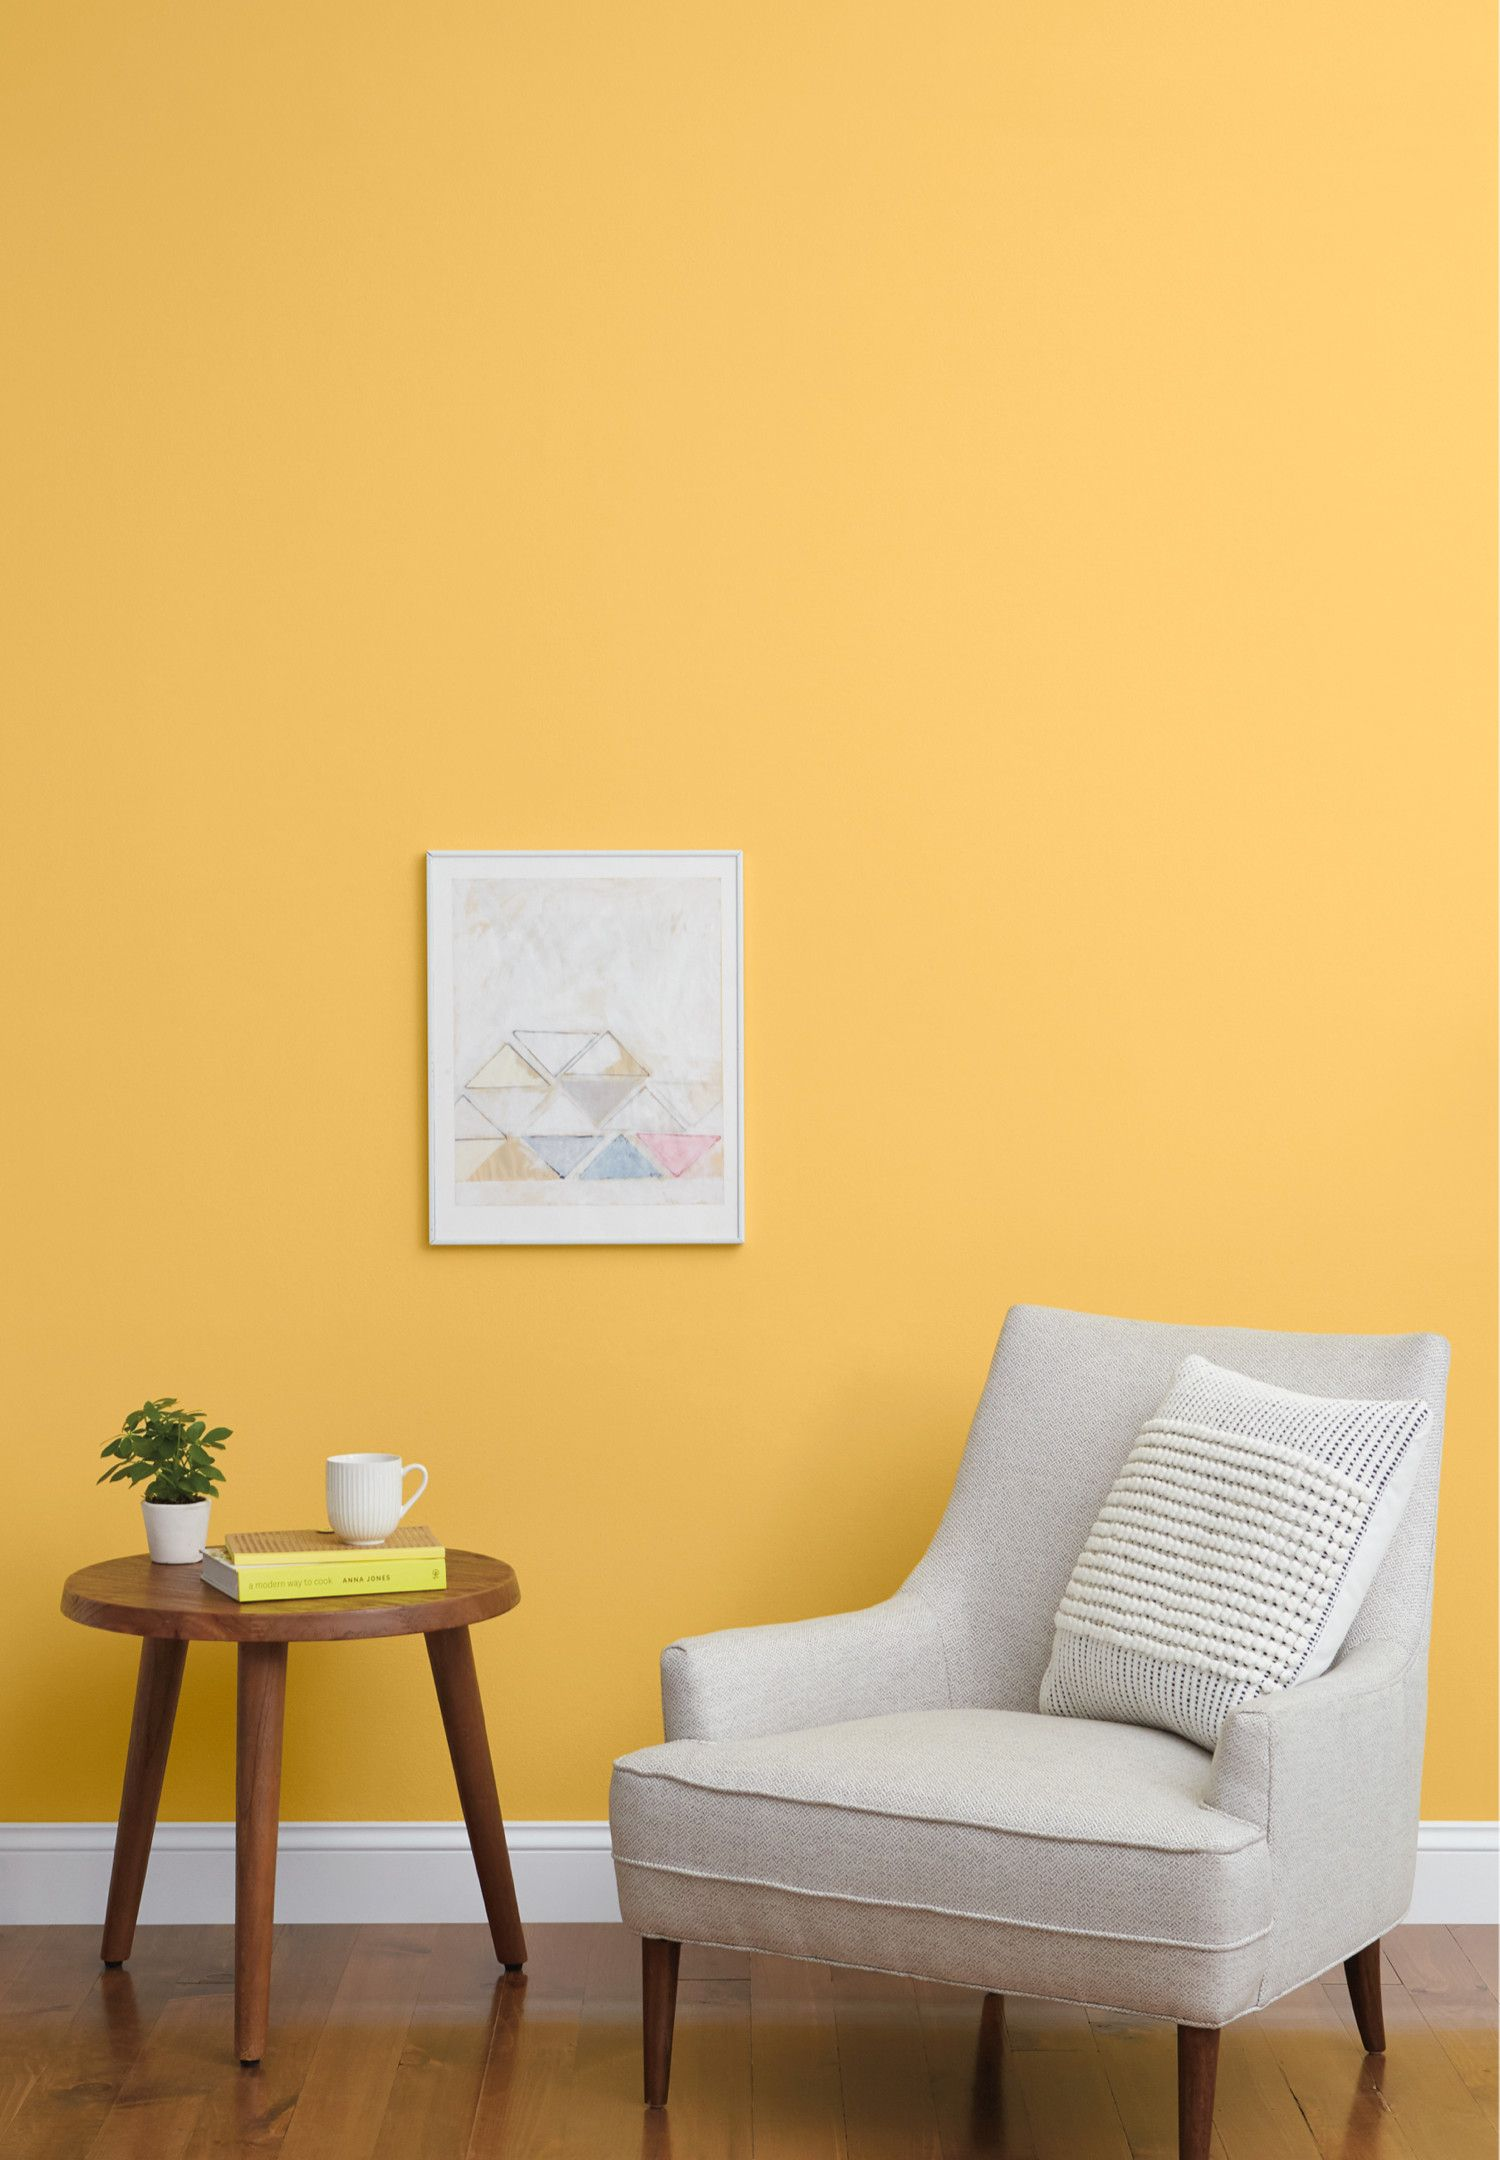 golden hour paint colors for living room best bedroom on interior designer recommended paint colors id=43551